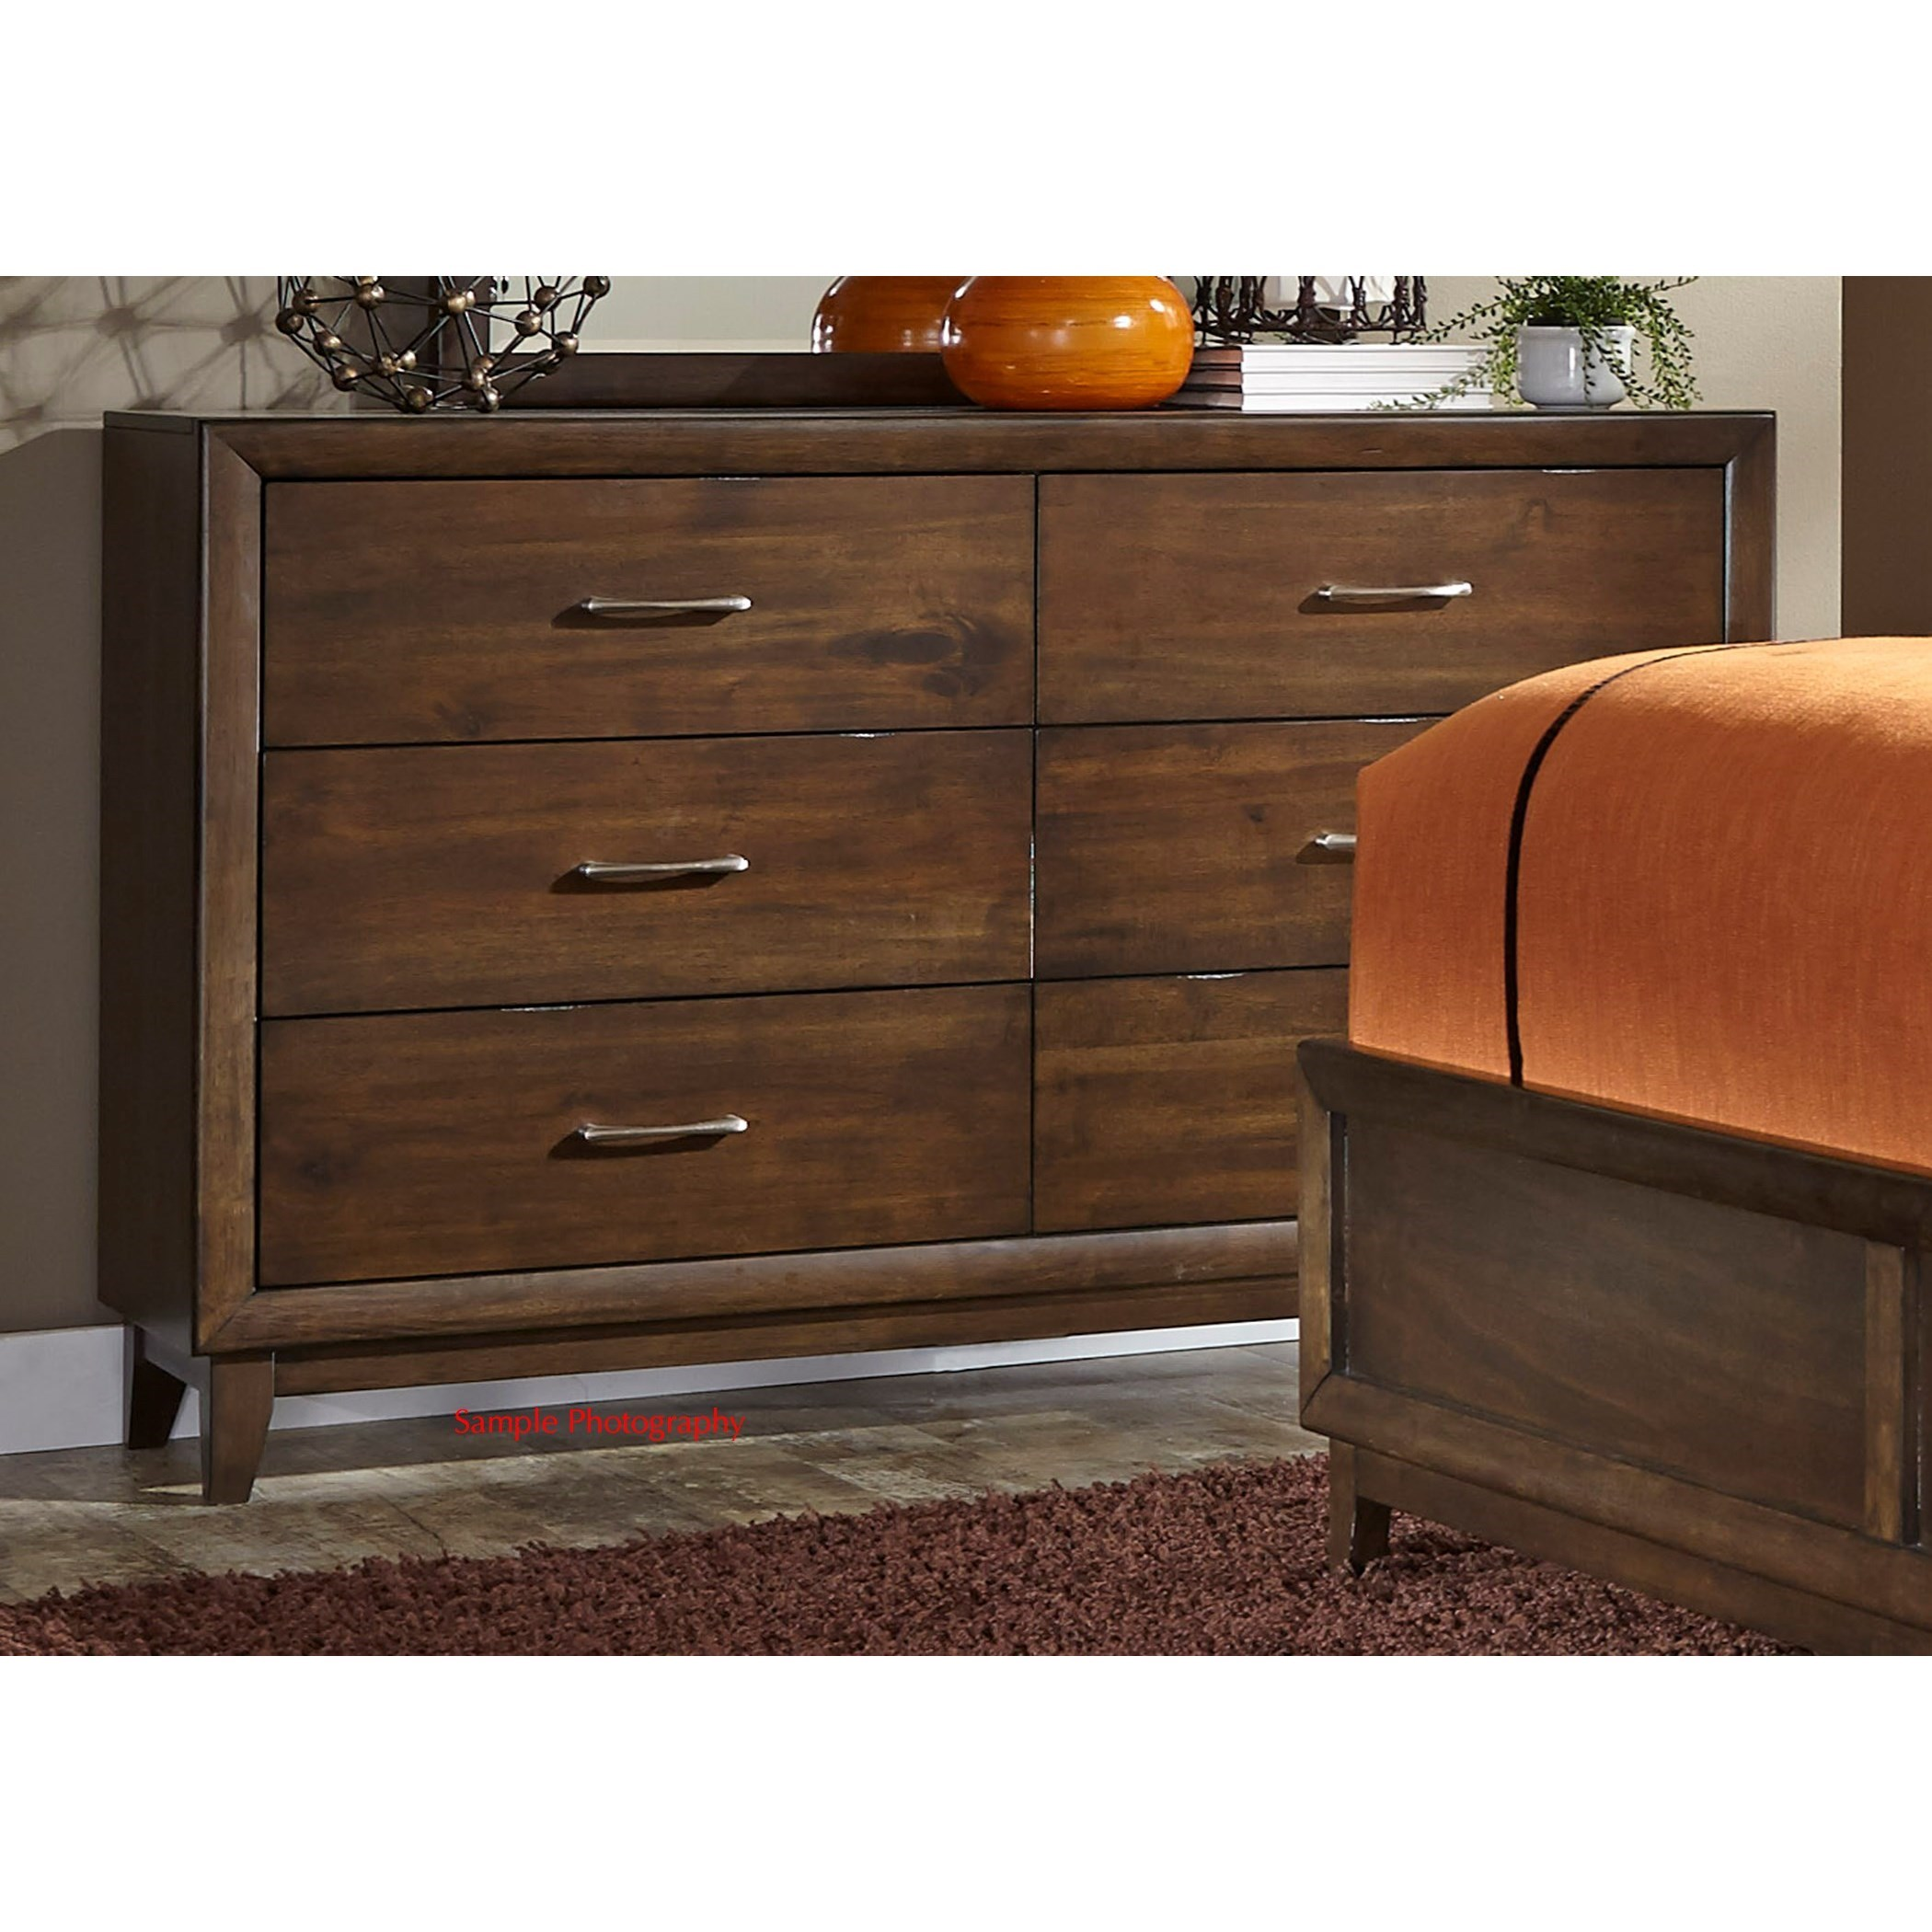 Liberty Furniture Hudson Square Bedroom 6 Drawer Dresser - Item Number: 365-BR31